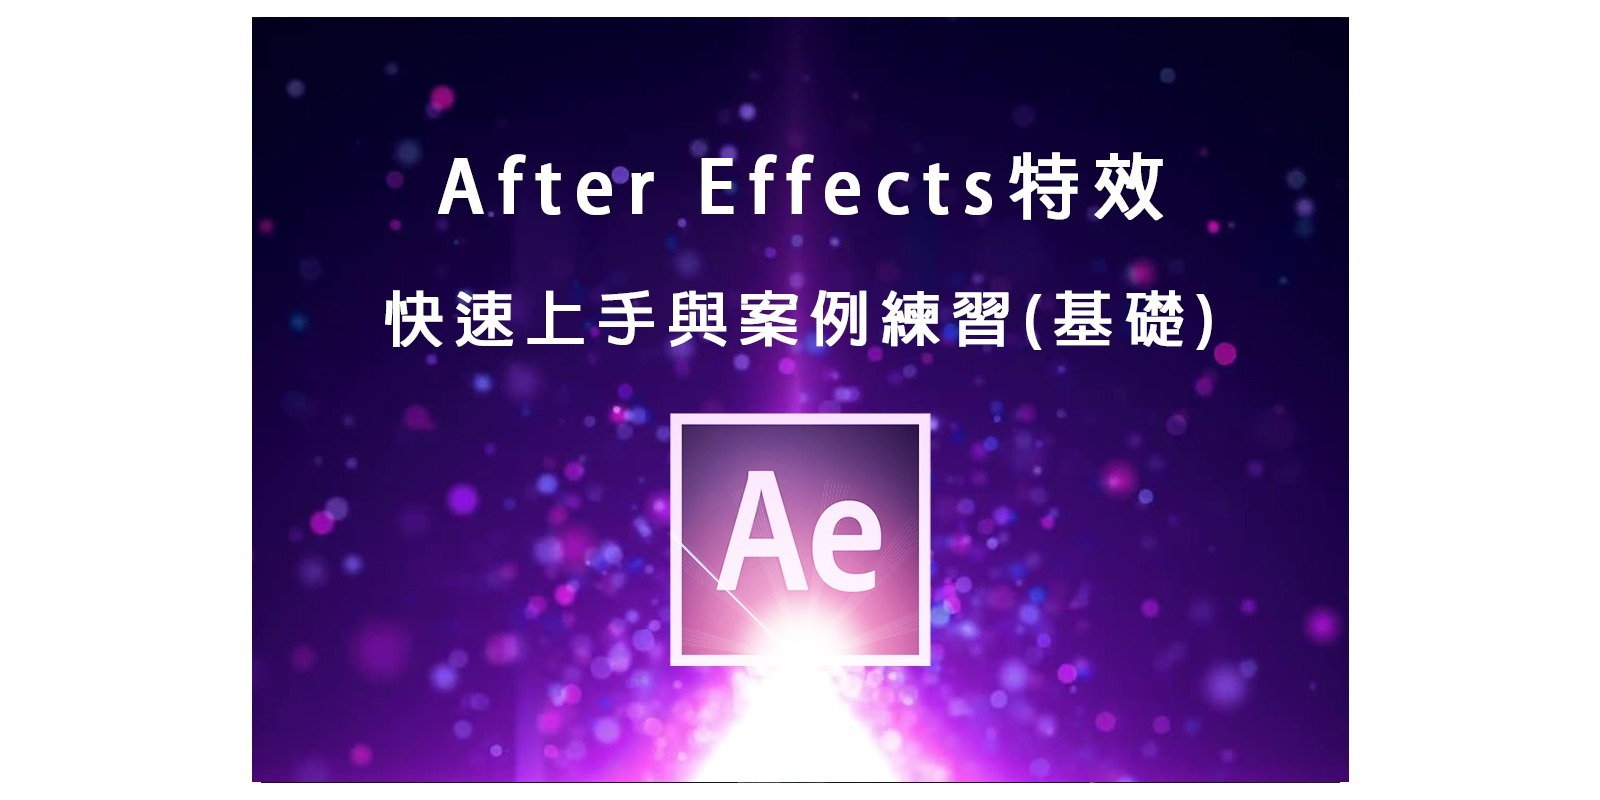 After Effects 課程